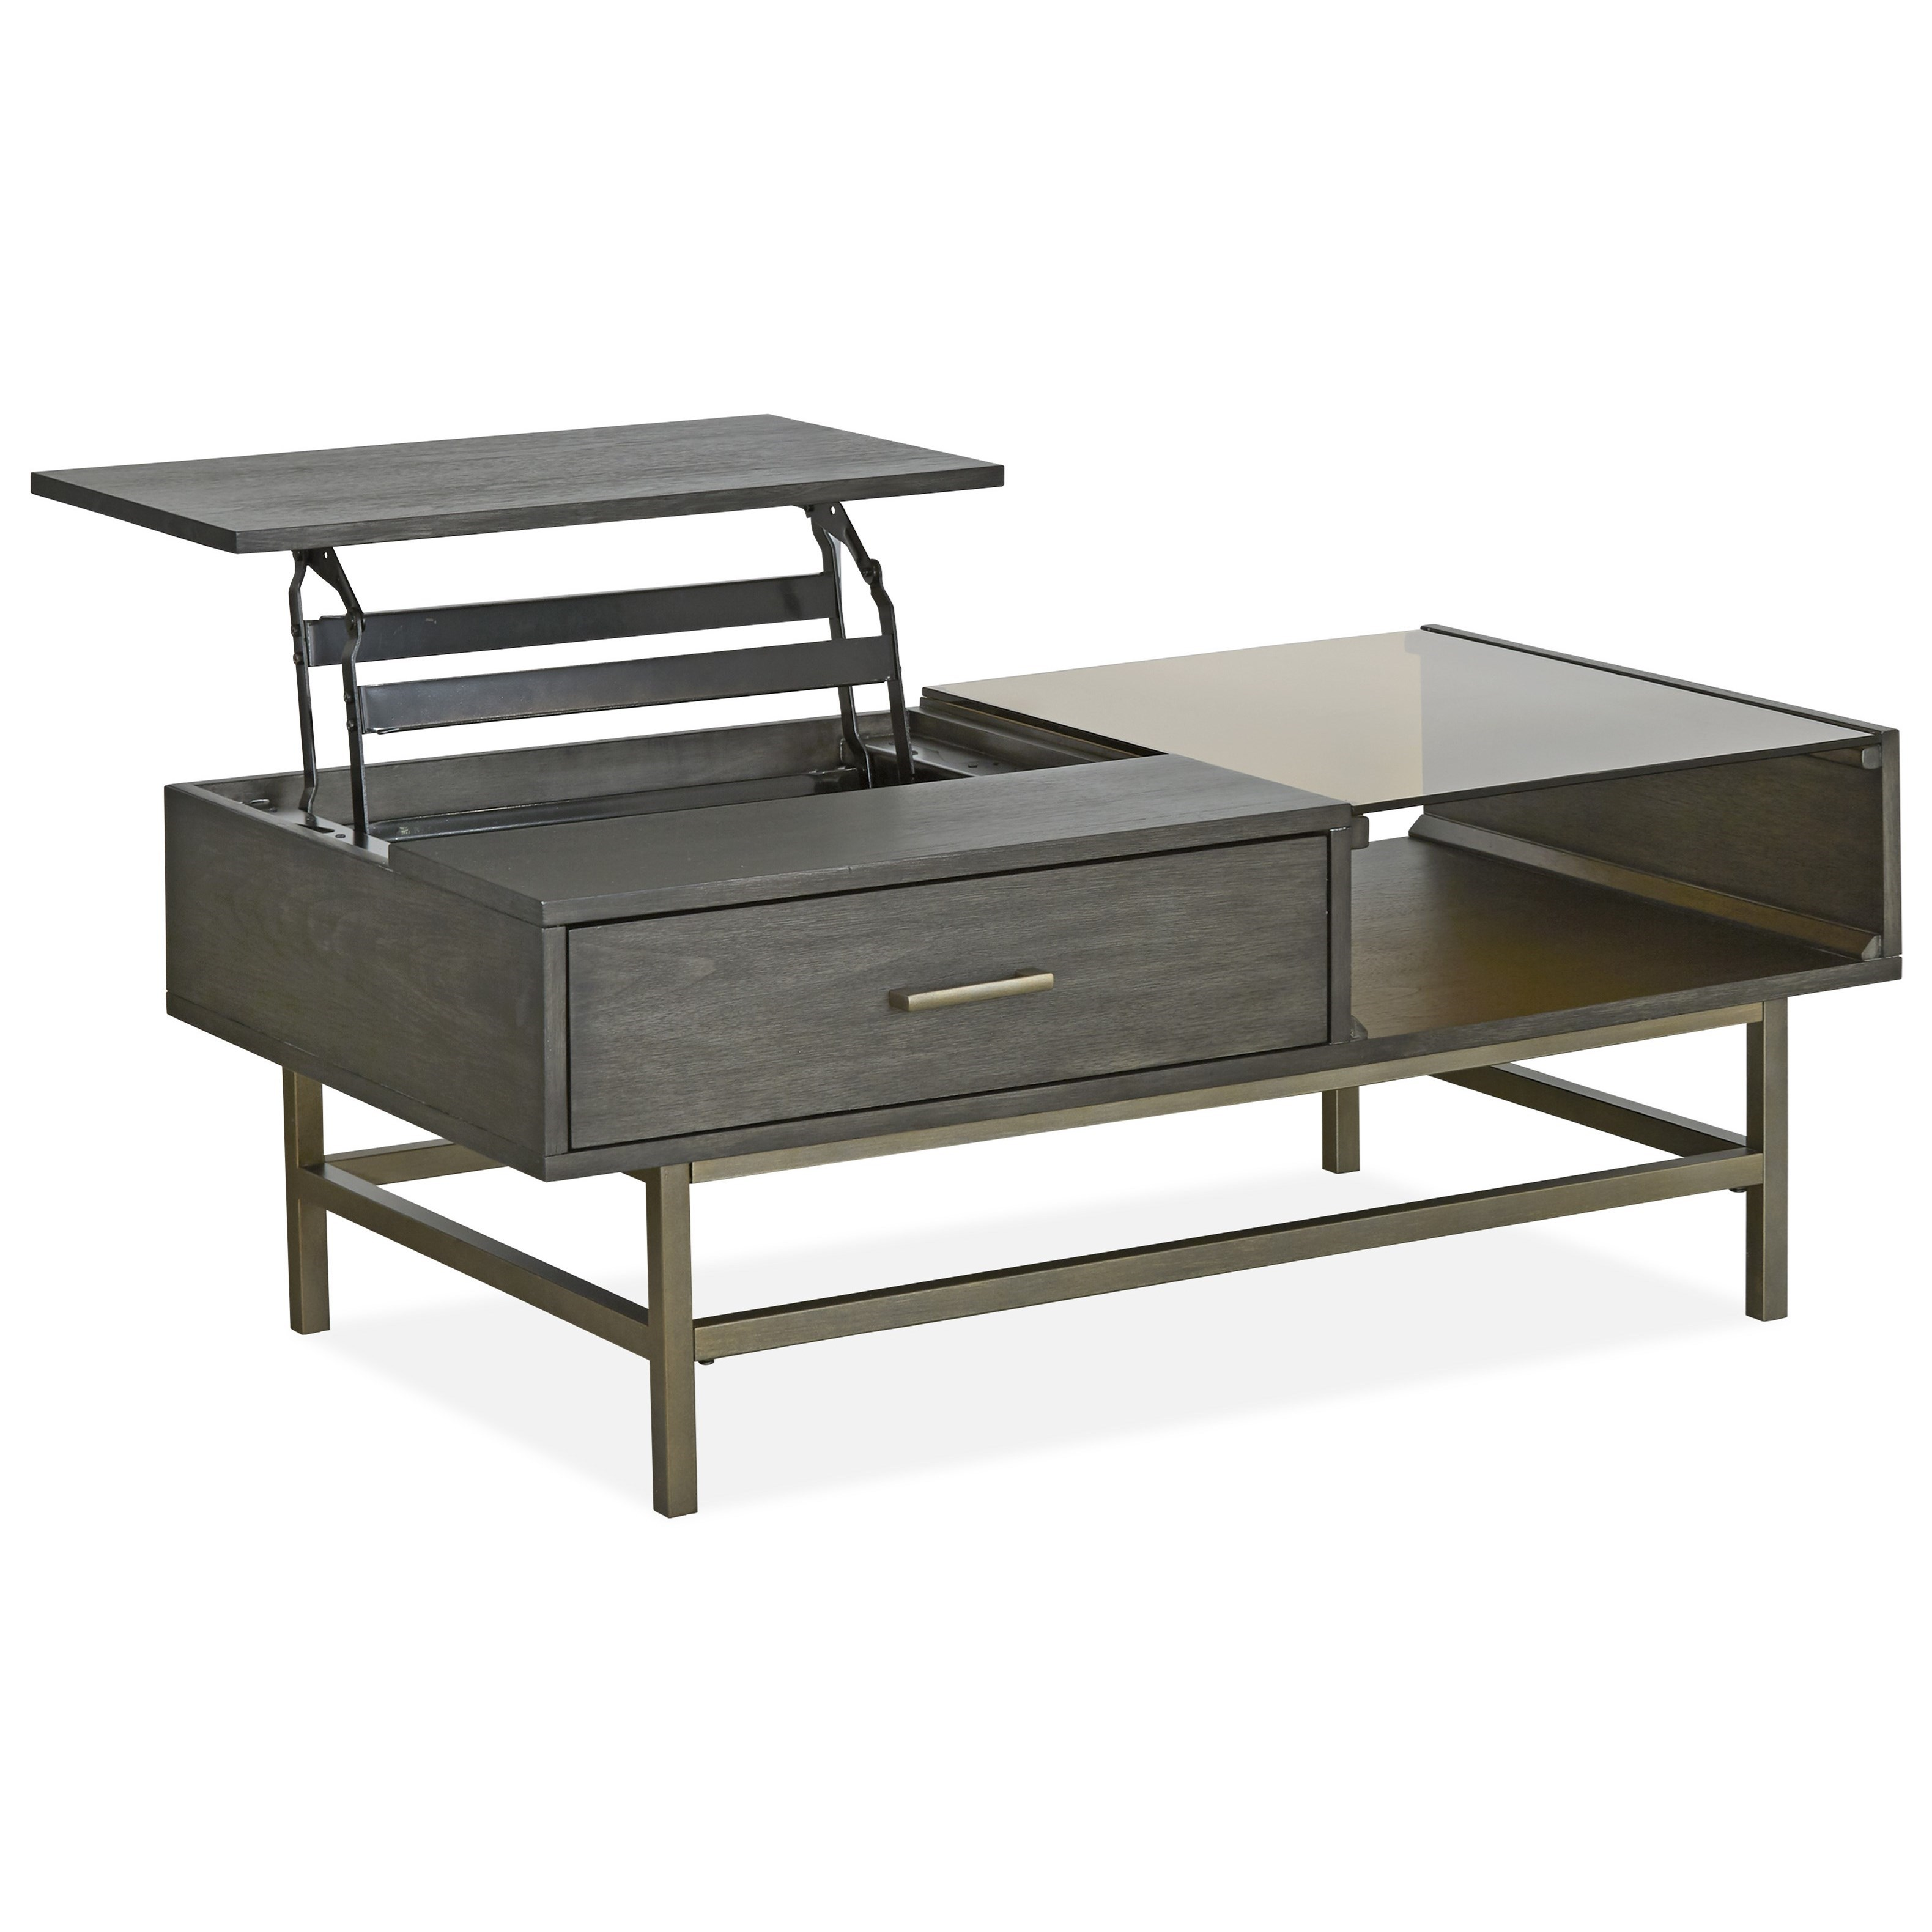 Fulton MH Lift Top Cocktail Table by Magnussen Home at Baer's Furniture